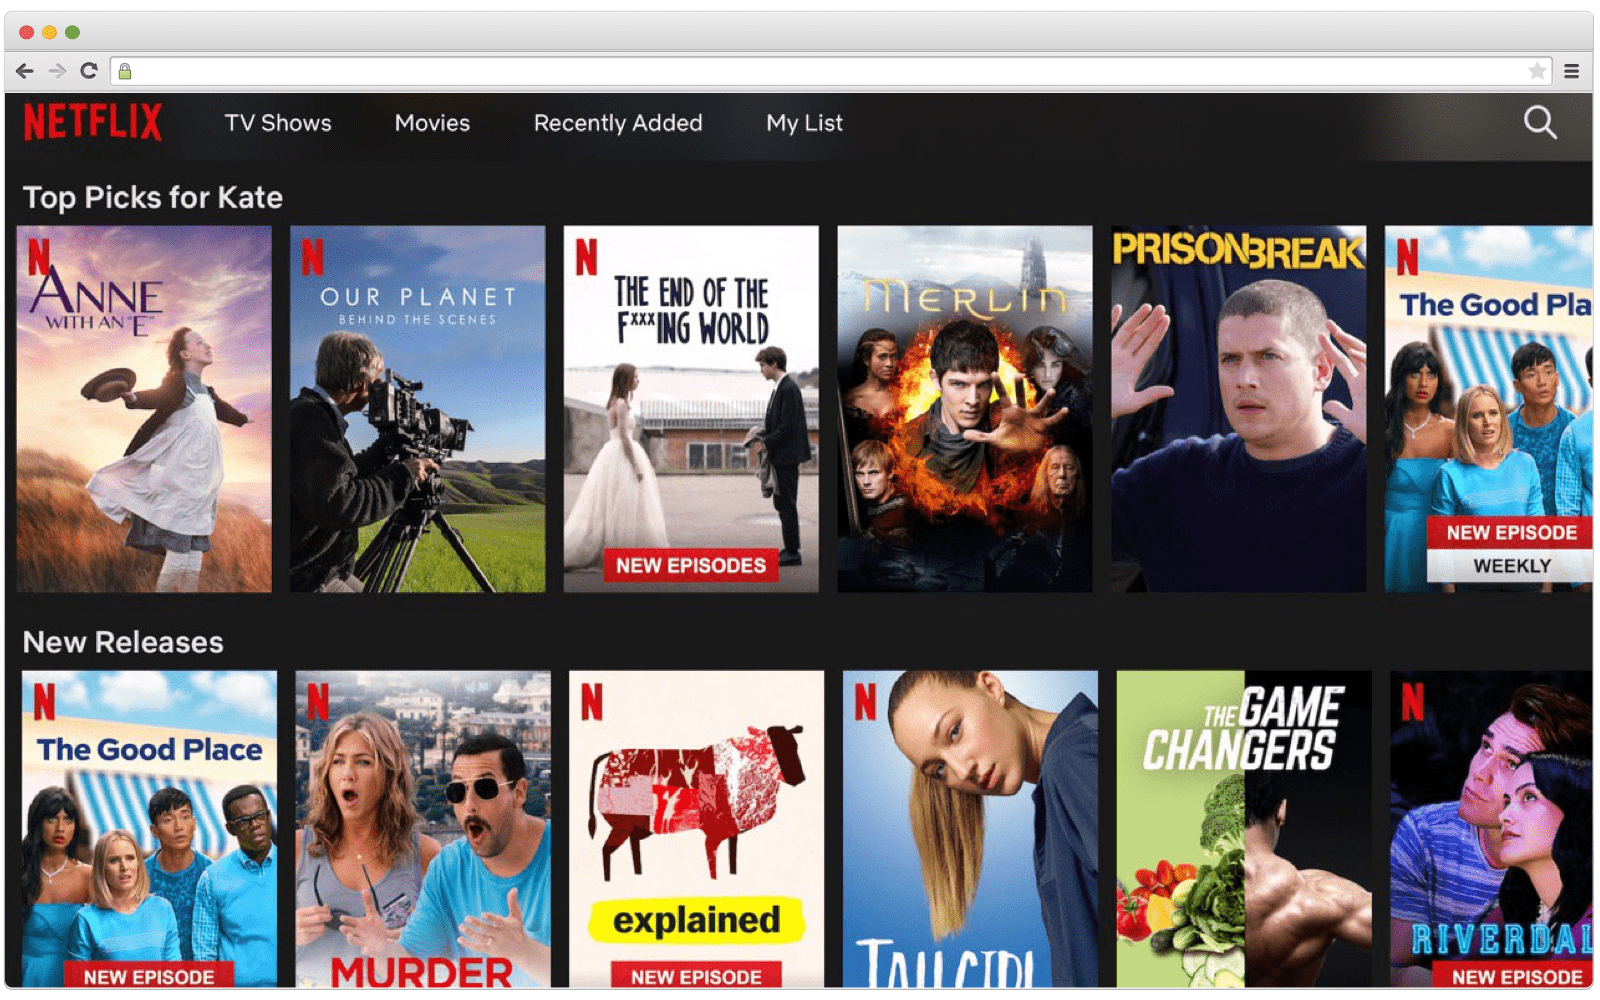 How AI improves Netflix suggestions